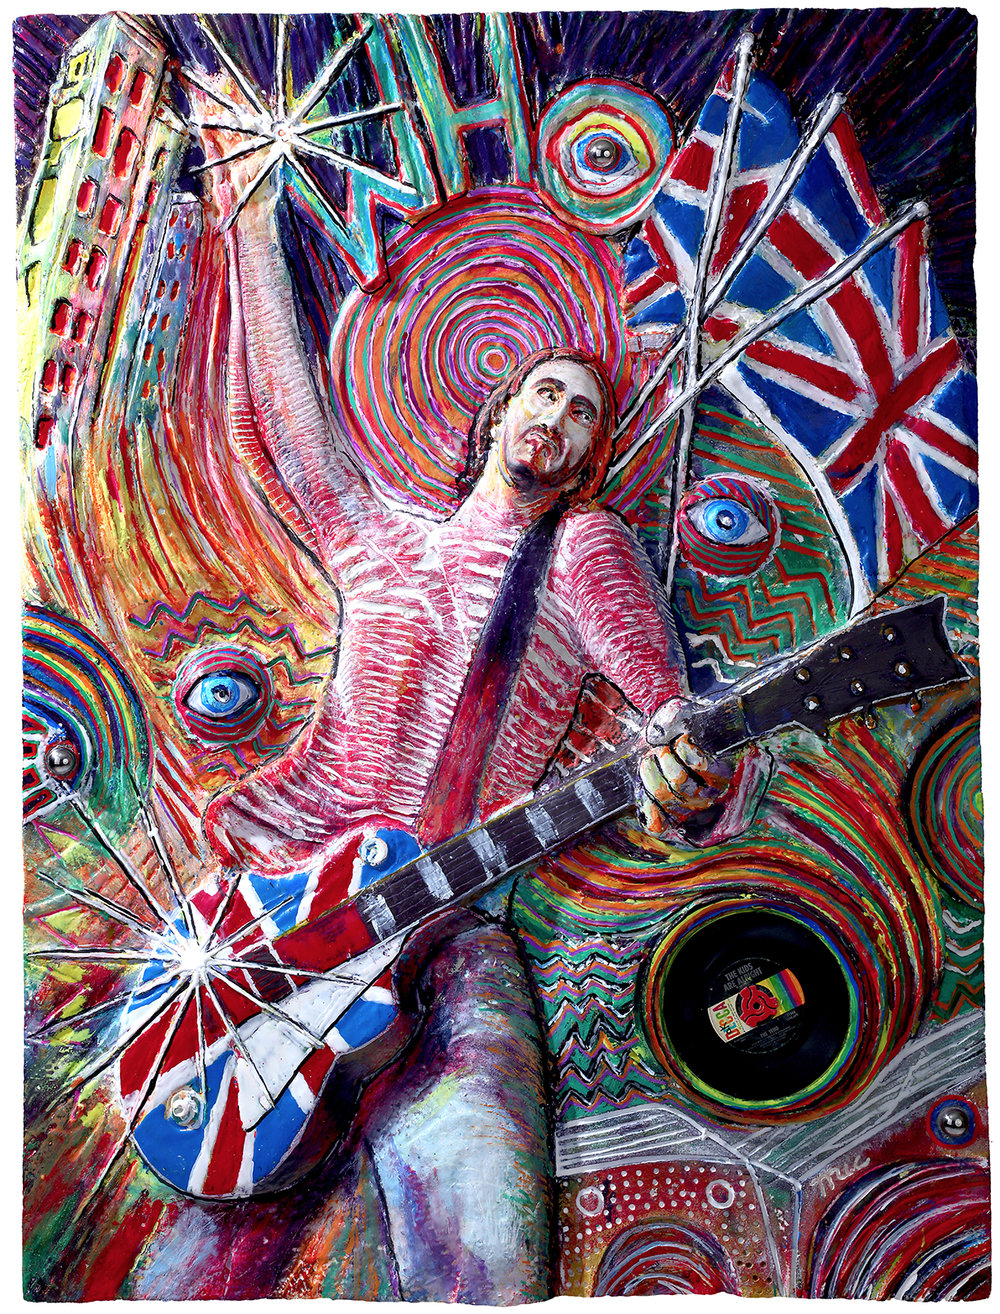 """Pete Townshend - Original 48"""" x 50"""" mix media $10,000 FramedReplicas hand made by Mic $2,500 To purchase please Call or email Mic#1 of 10 Private collection of HopCat Downtown Grand Rapids."""